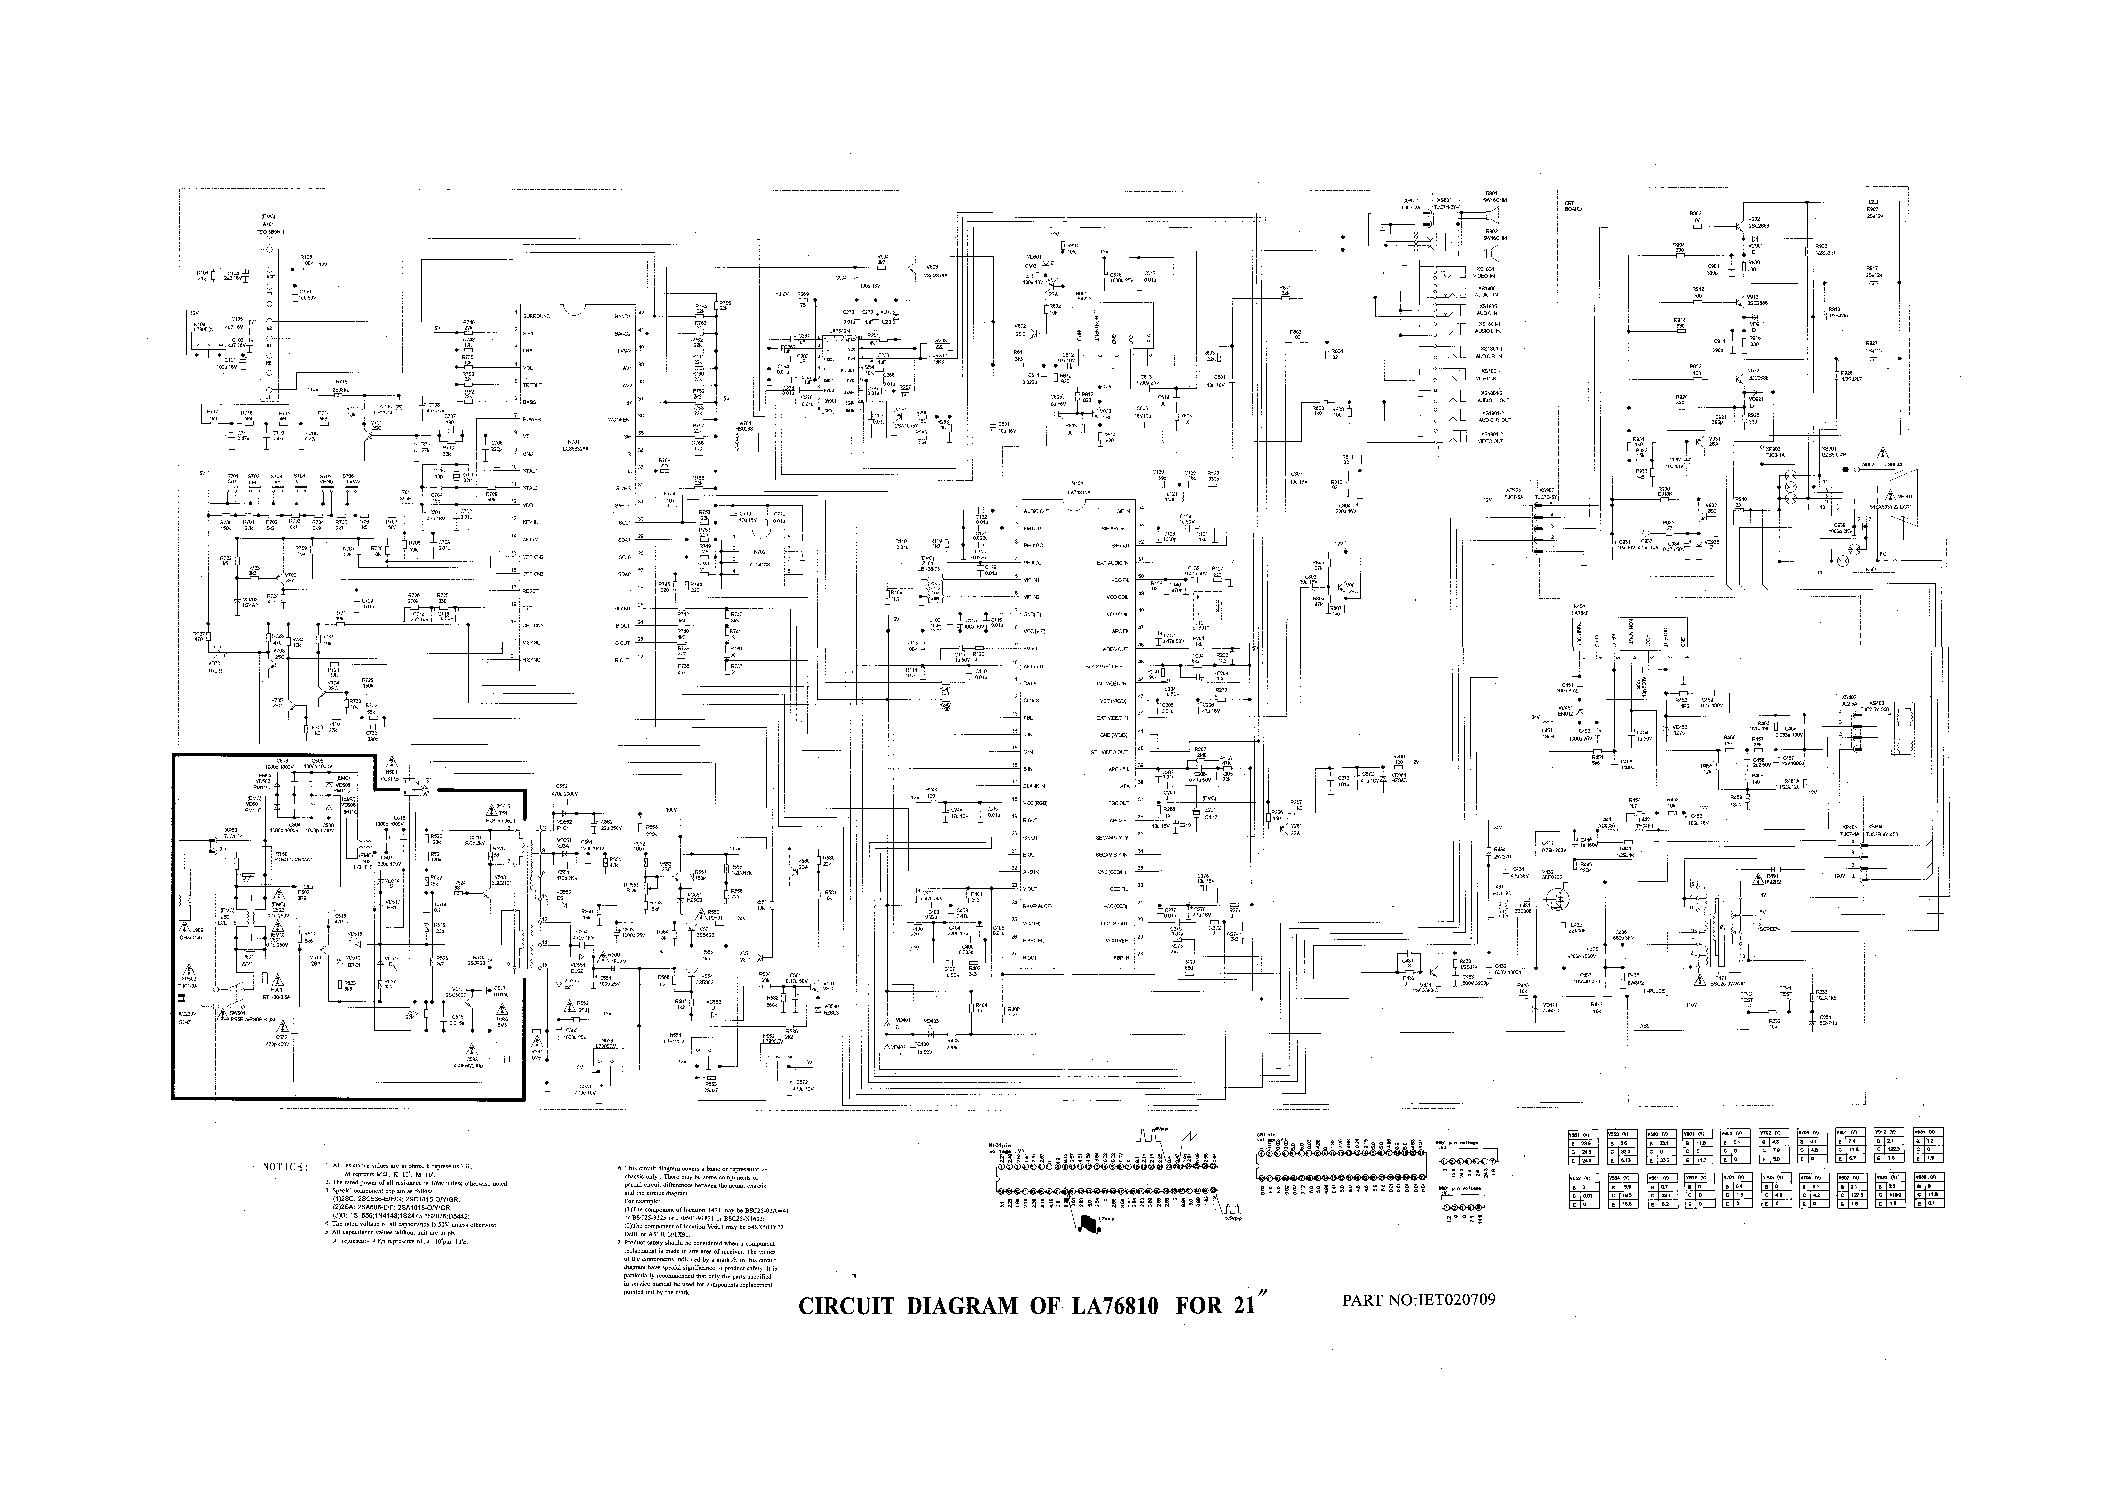 AVEST 54TC-01 02.2 service manual (1st page)